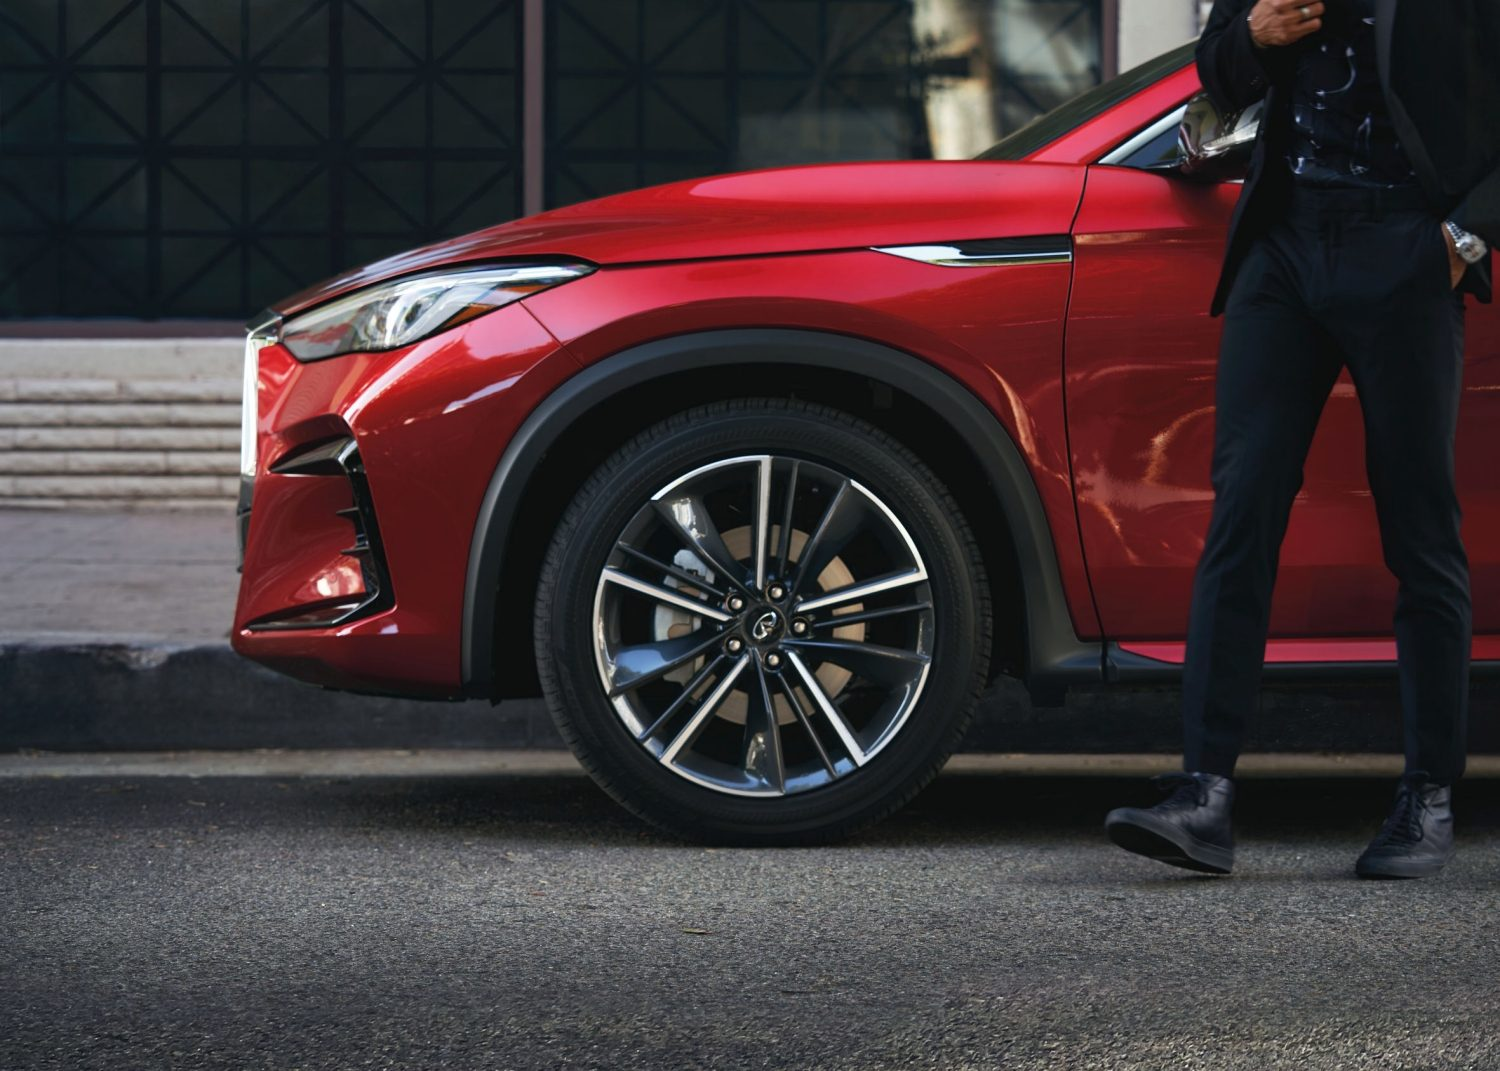 Luxurious rims and wheels on the 2022 INFINITI QX55 crossover